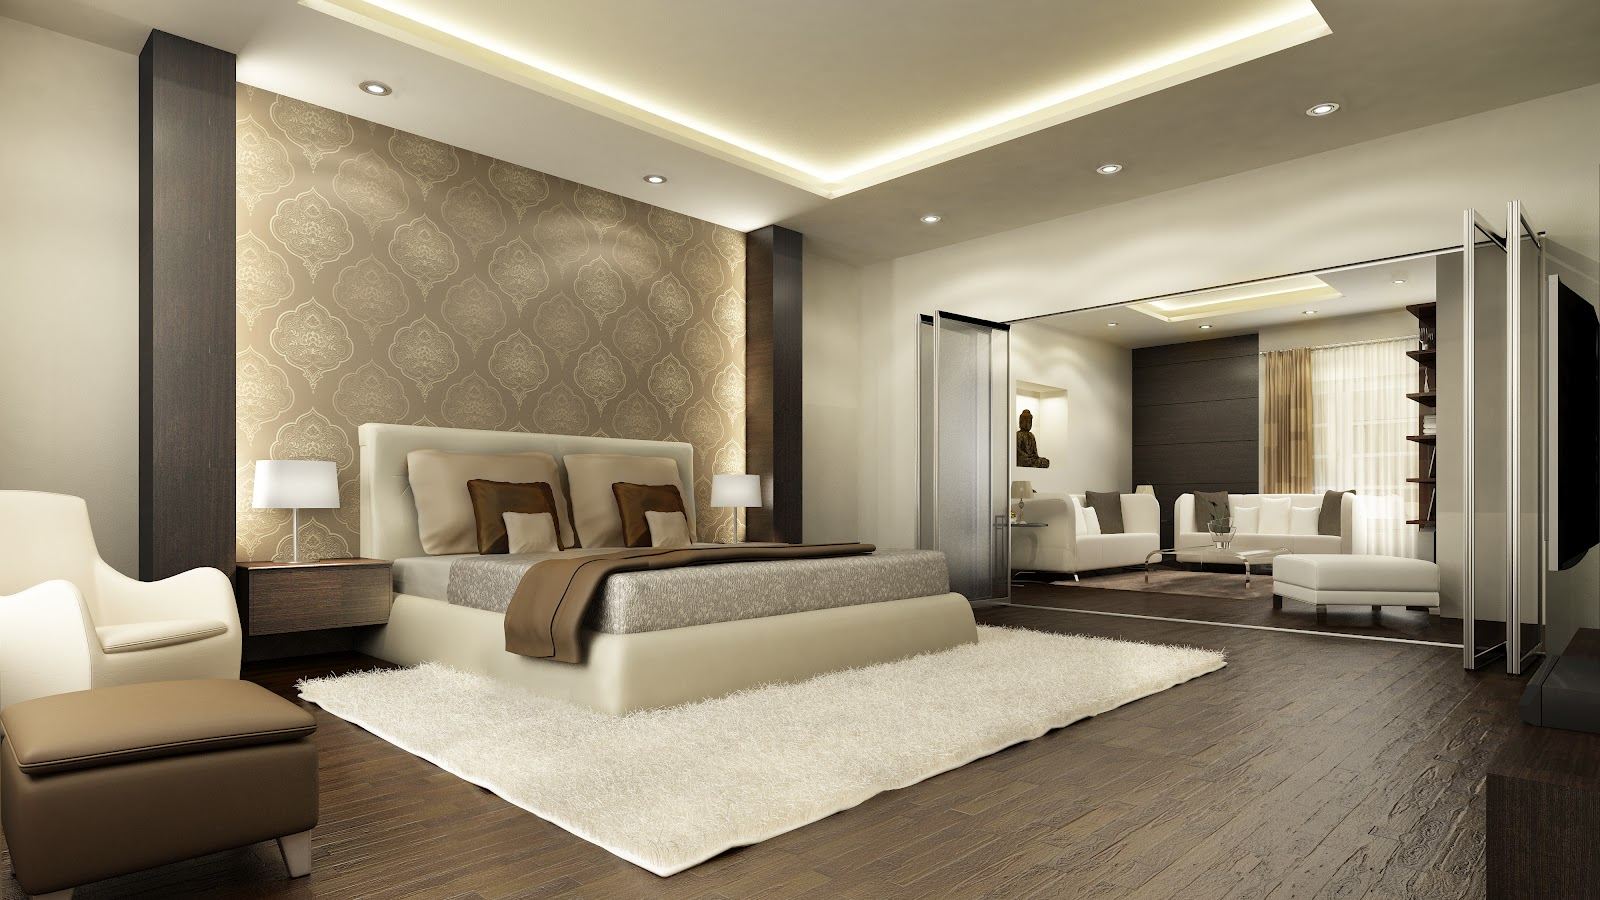 10 most popular master bedroom designs for 2014 qnud for Modern master bedroom designs 2014